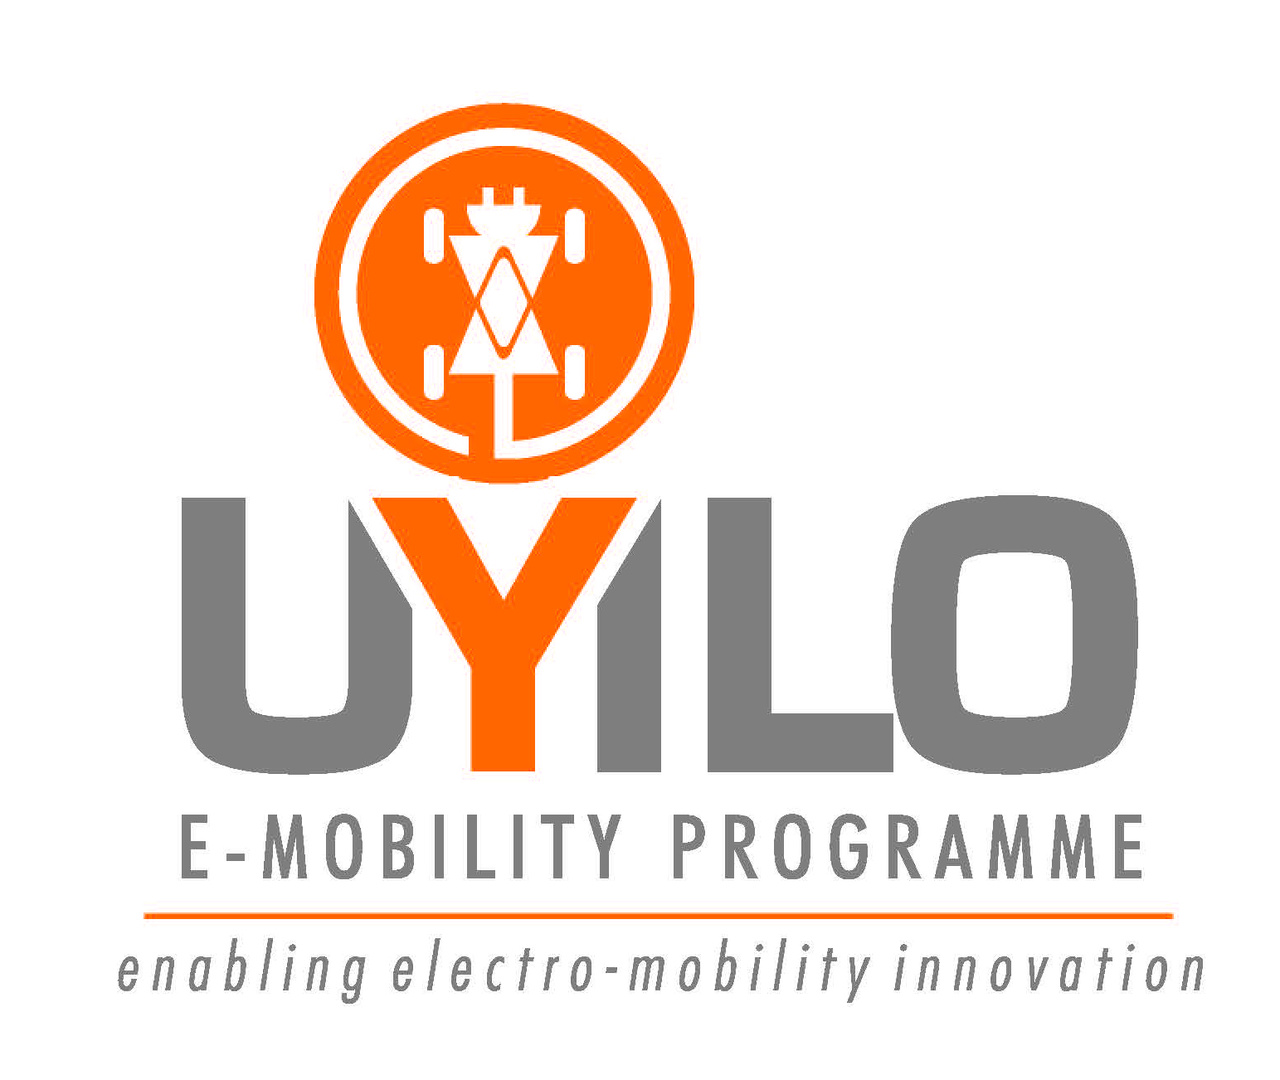 South Africa's mobility startups can apply for funding from uYilo program